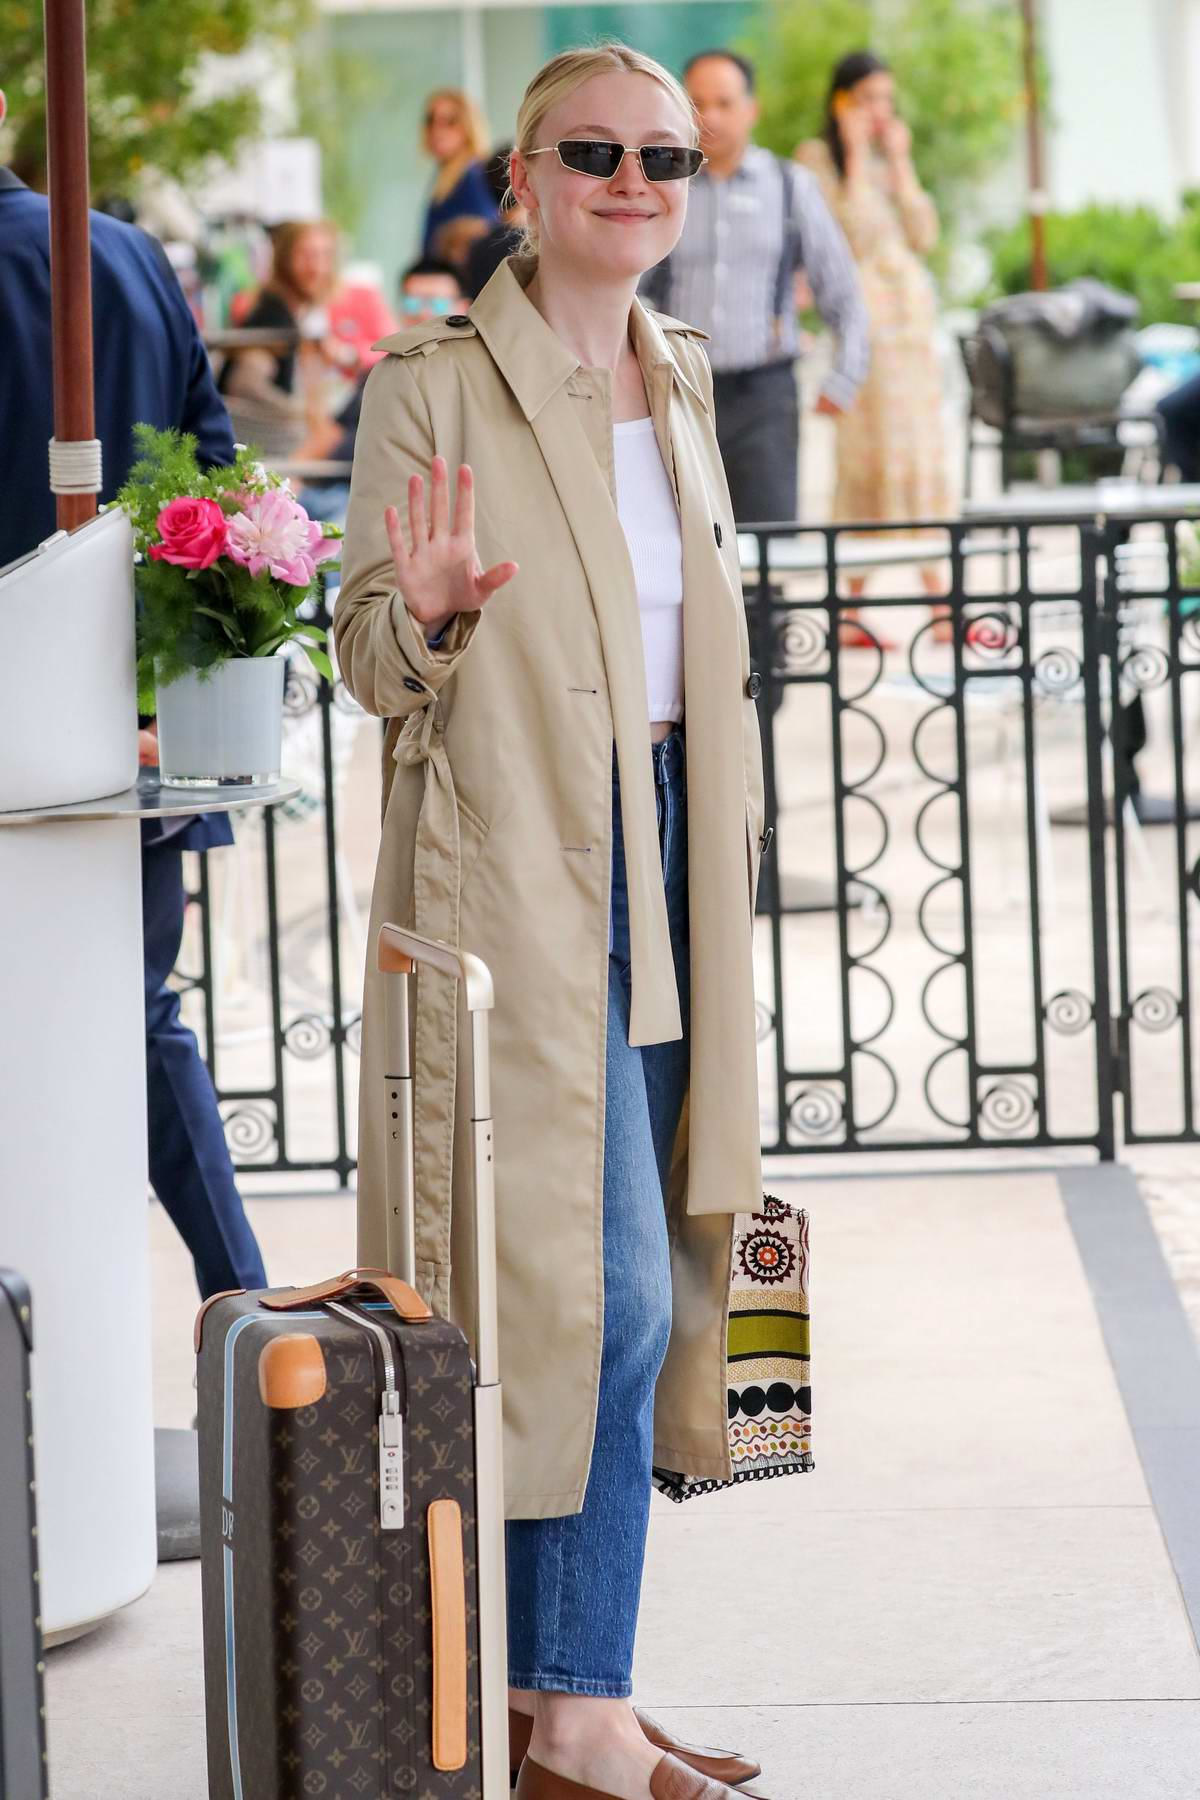 Dakota Fanning seen with her Louis Vuitton suitcase outside the Martinez hotel during the 72nd annual Cannes Film Festival in Cannes, France